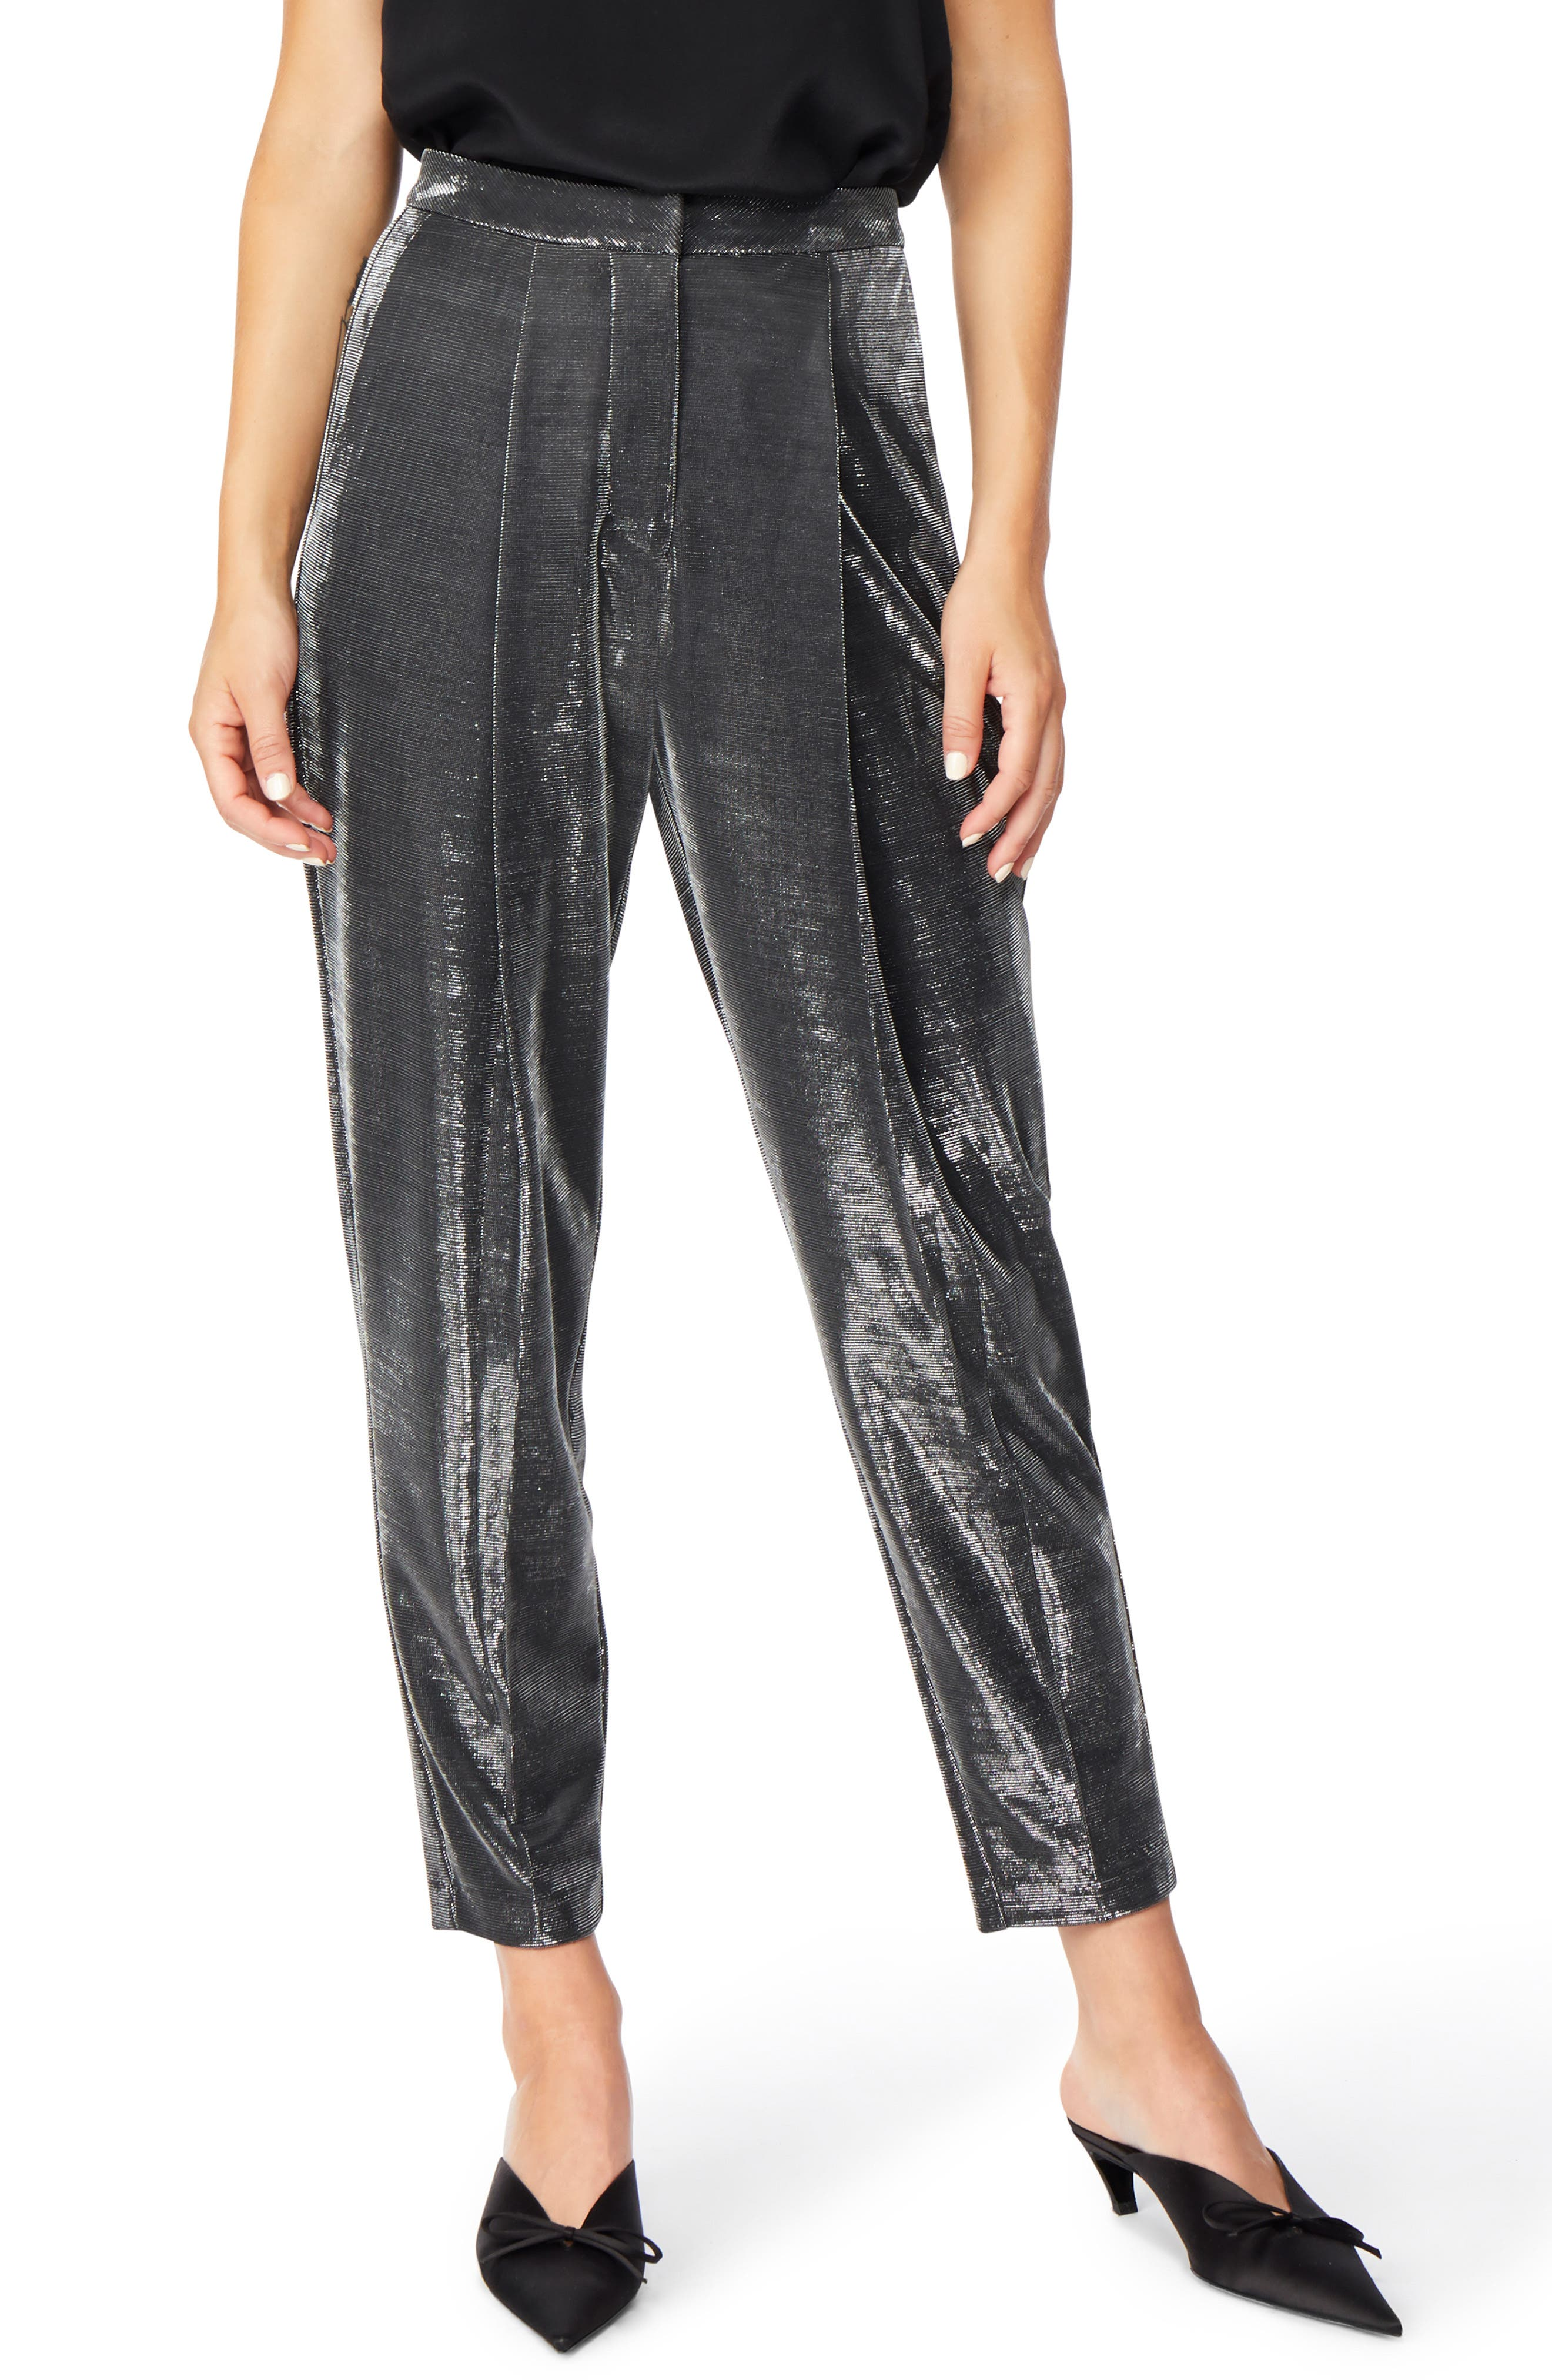 Shimmer Trousers,                             Main thumbnail 1, color,                             JET BLACK WITH SILVER